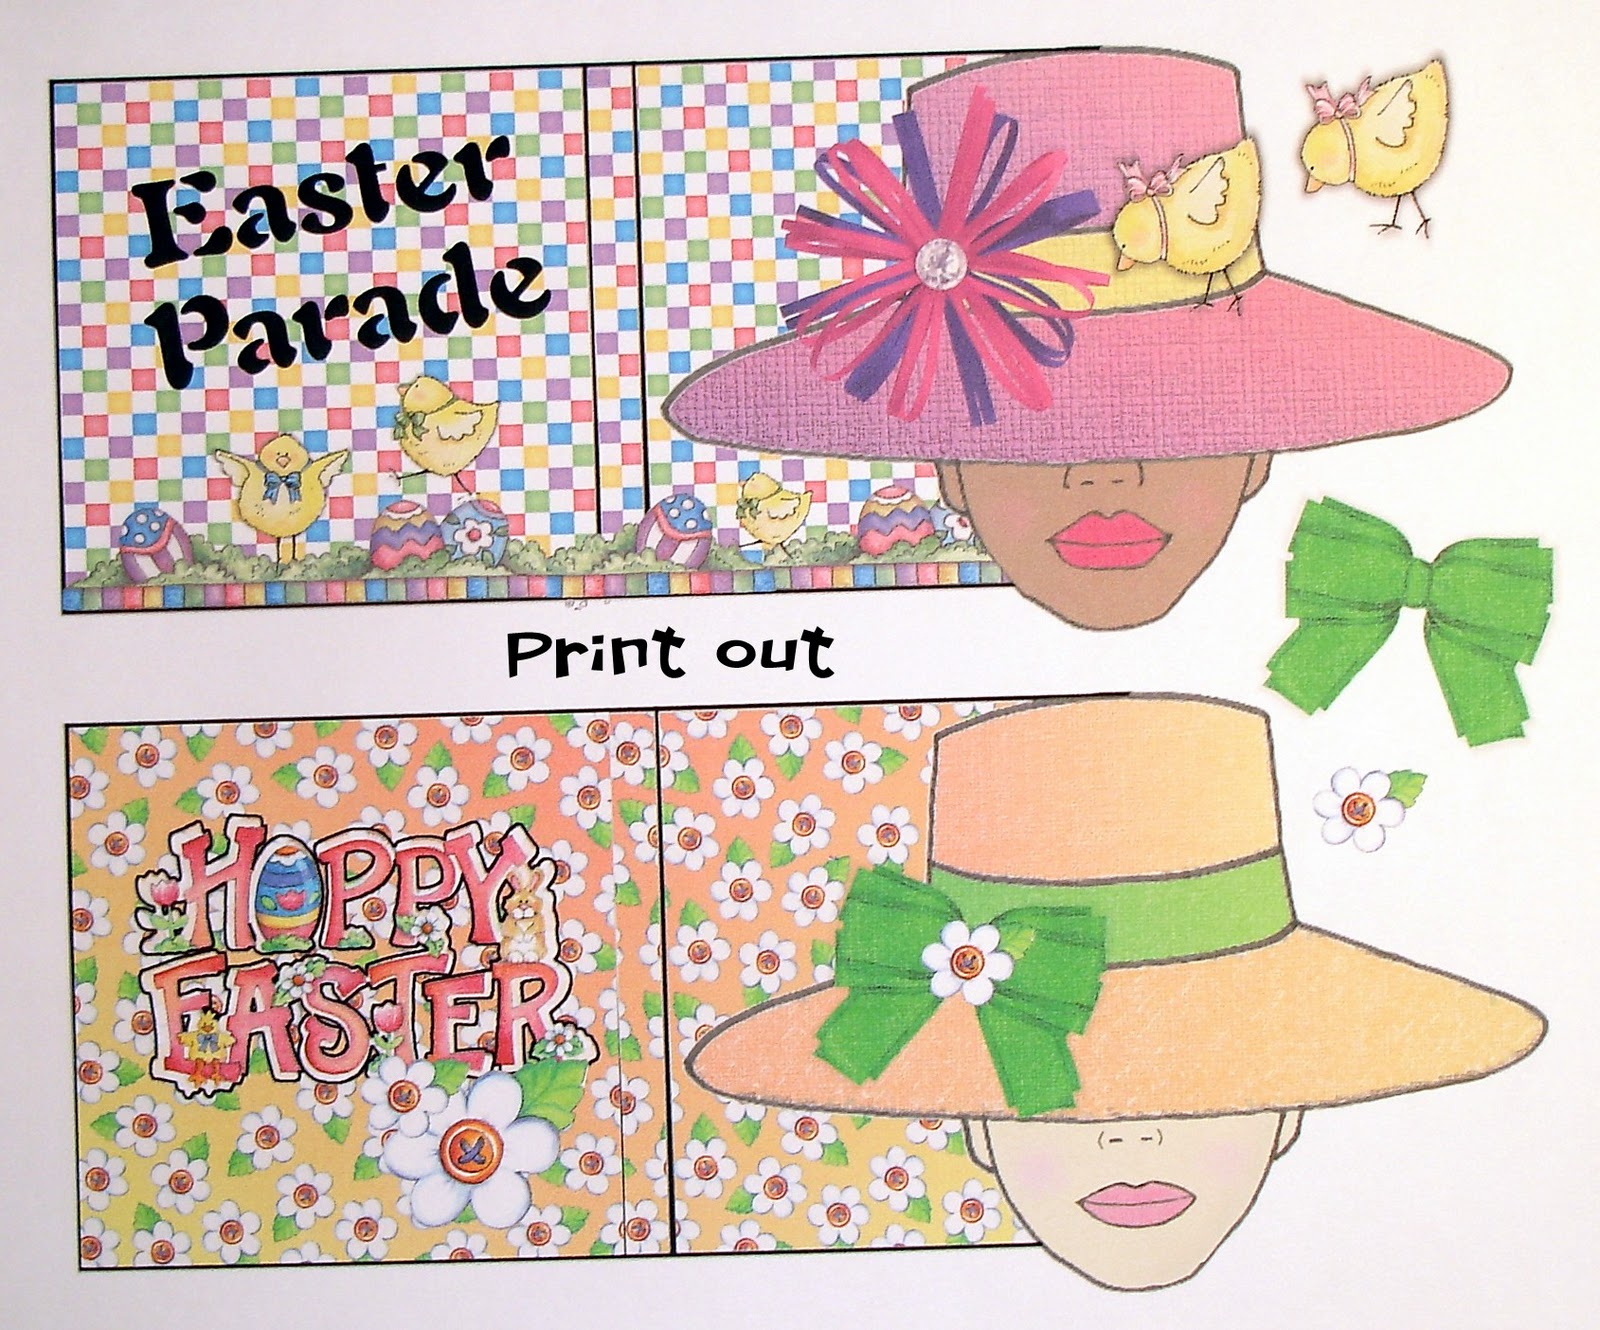 easter bonnet printable templates - easter bonnet printable templates 28 images 1000